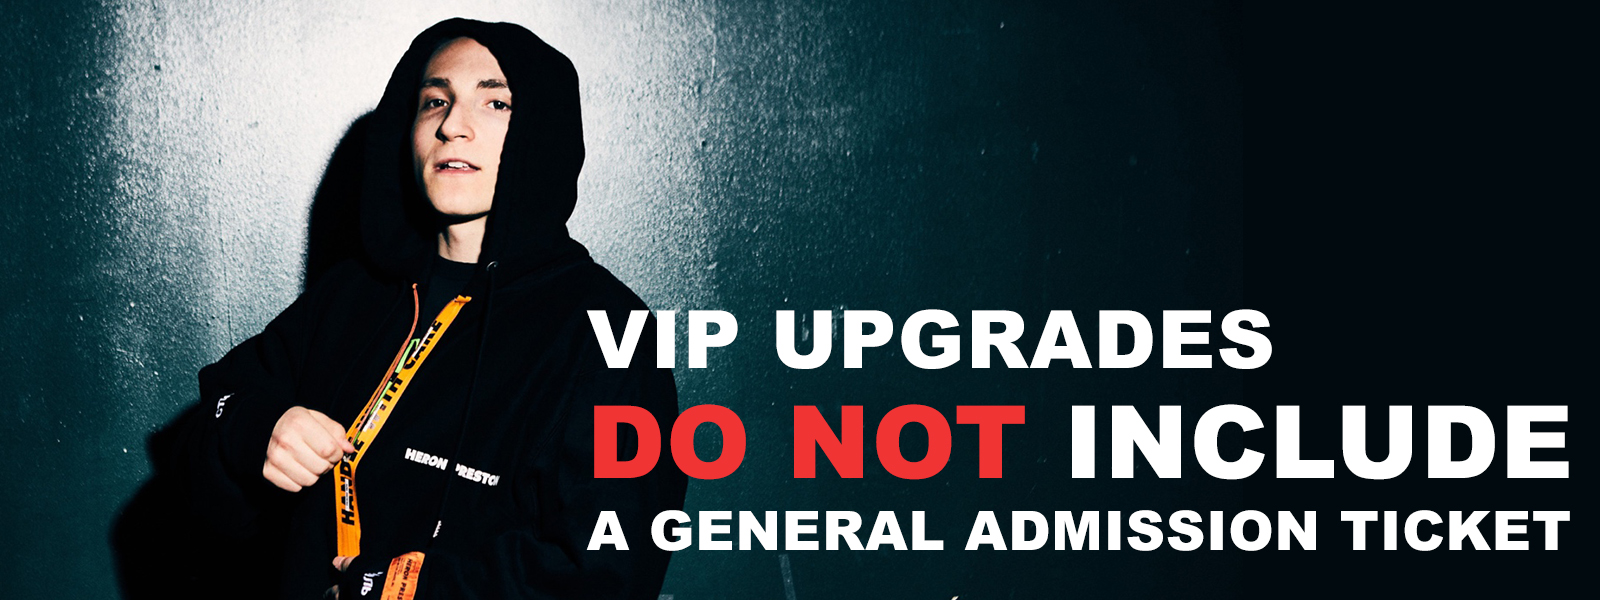 VIP UPGRADES DO NOT INCLUDE A GENERAL ADMISSION TICKET